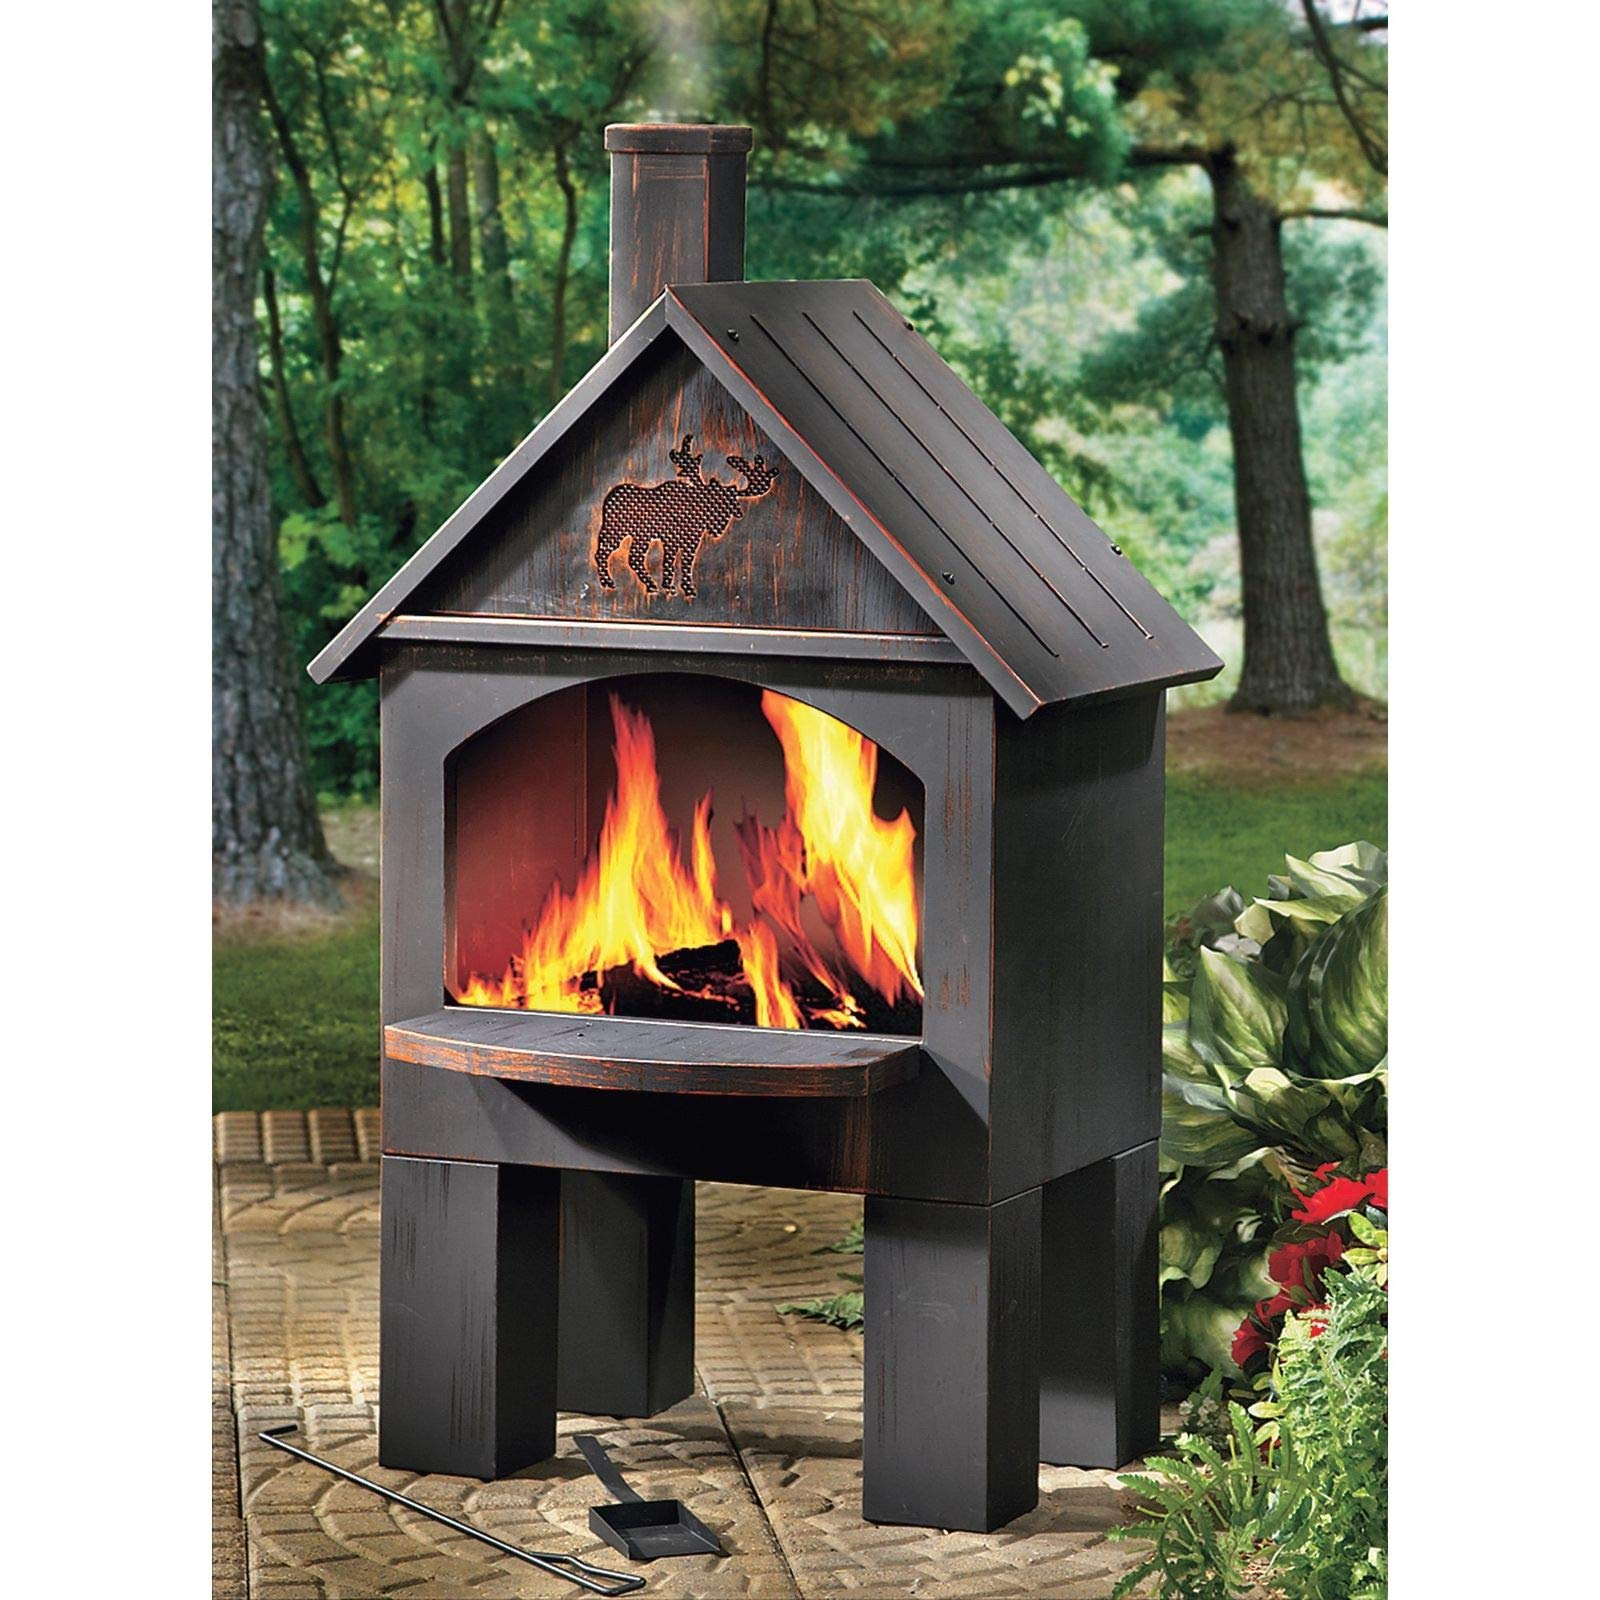 Nice1159 Cabin-Style Outdoor Cooking Baking Steel Wood Charcoal Fireplace Chimenea, Moose 20W x 25D x 43H (Only 3 pcs Left) by Nice1159